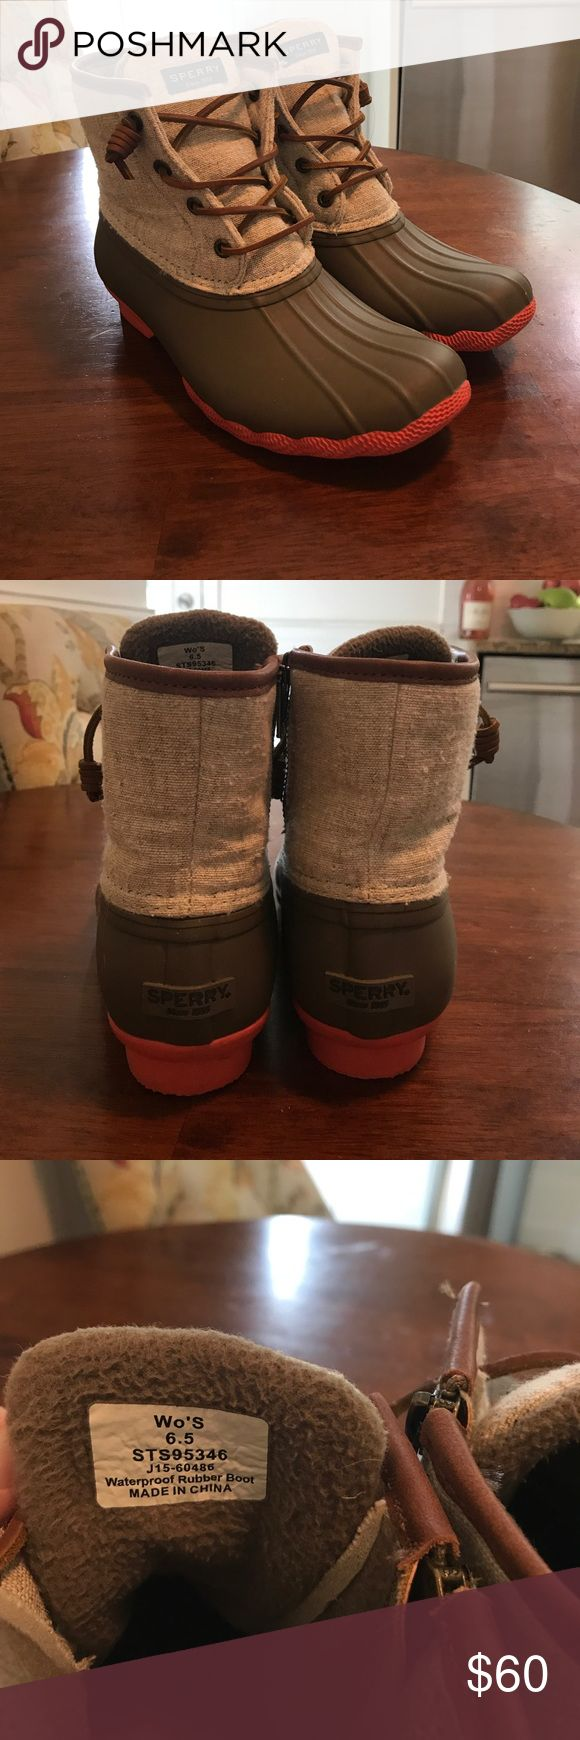 Sperry Woman's Saltwater Duck Boot Duck inspired wet weather boots. Color-Linen Size 6.5 Sperry Top-Sider Shoes Winter & Rain Boots